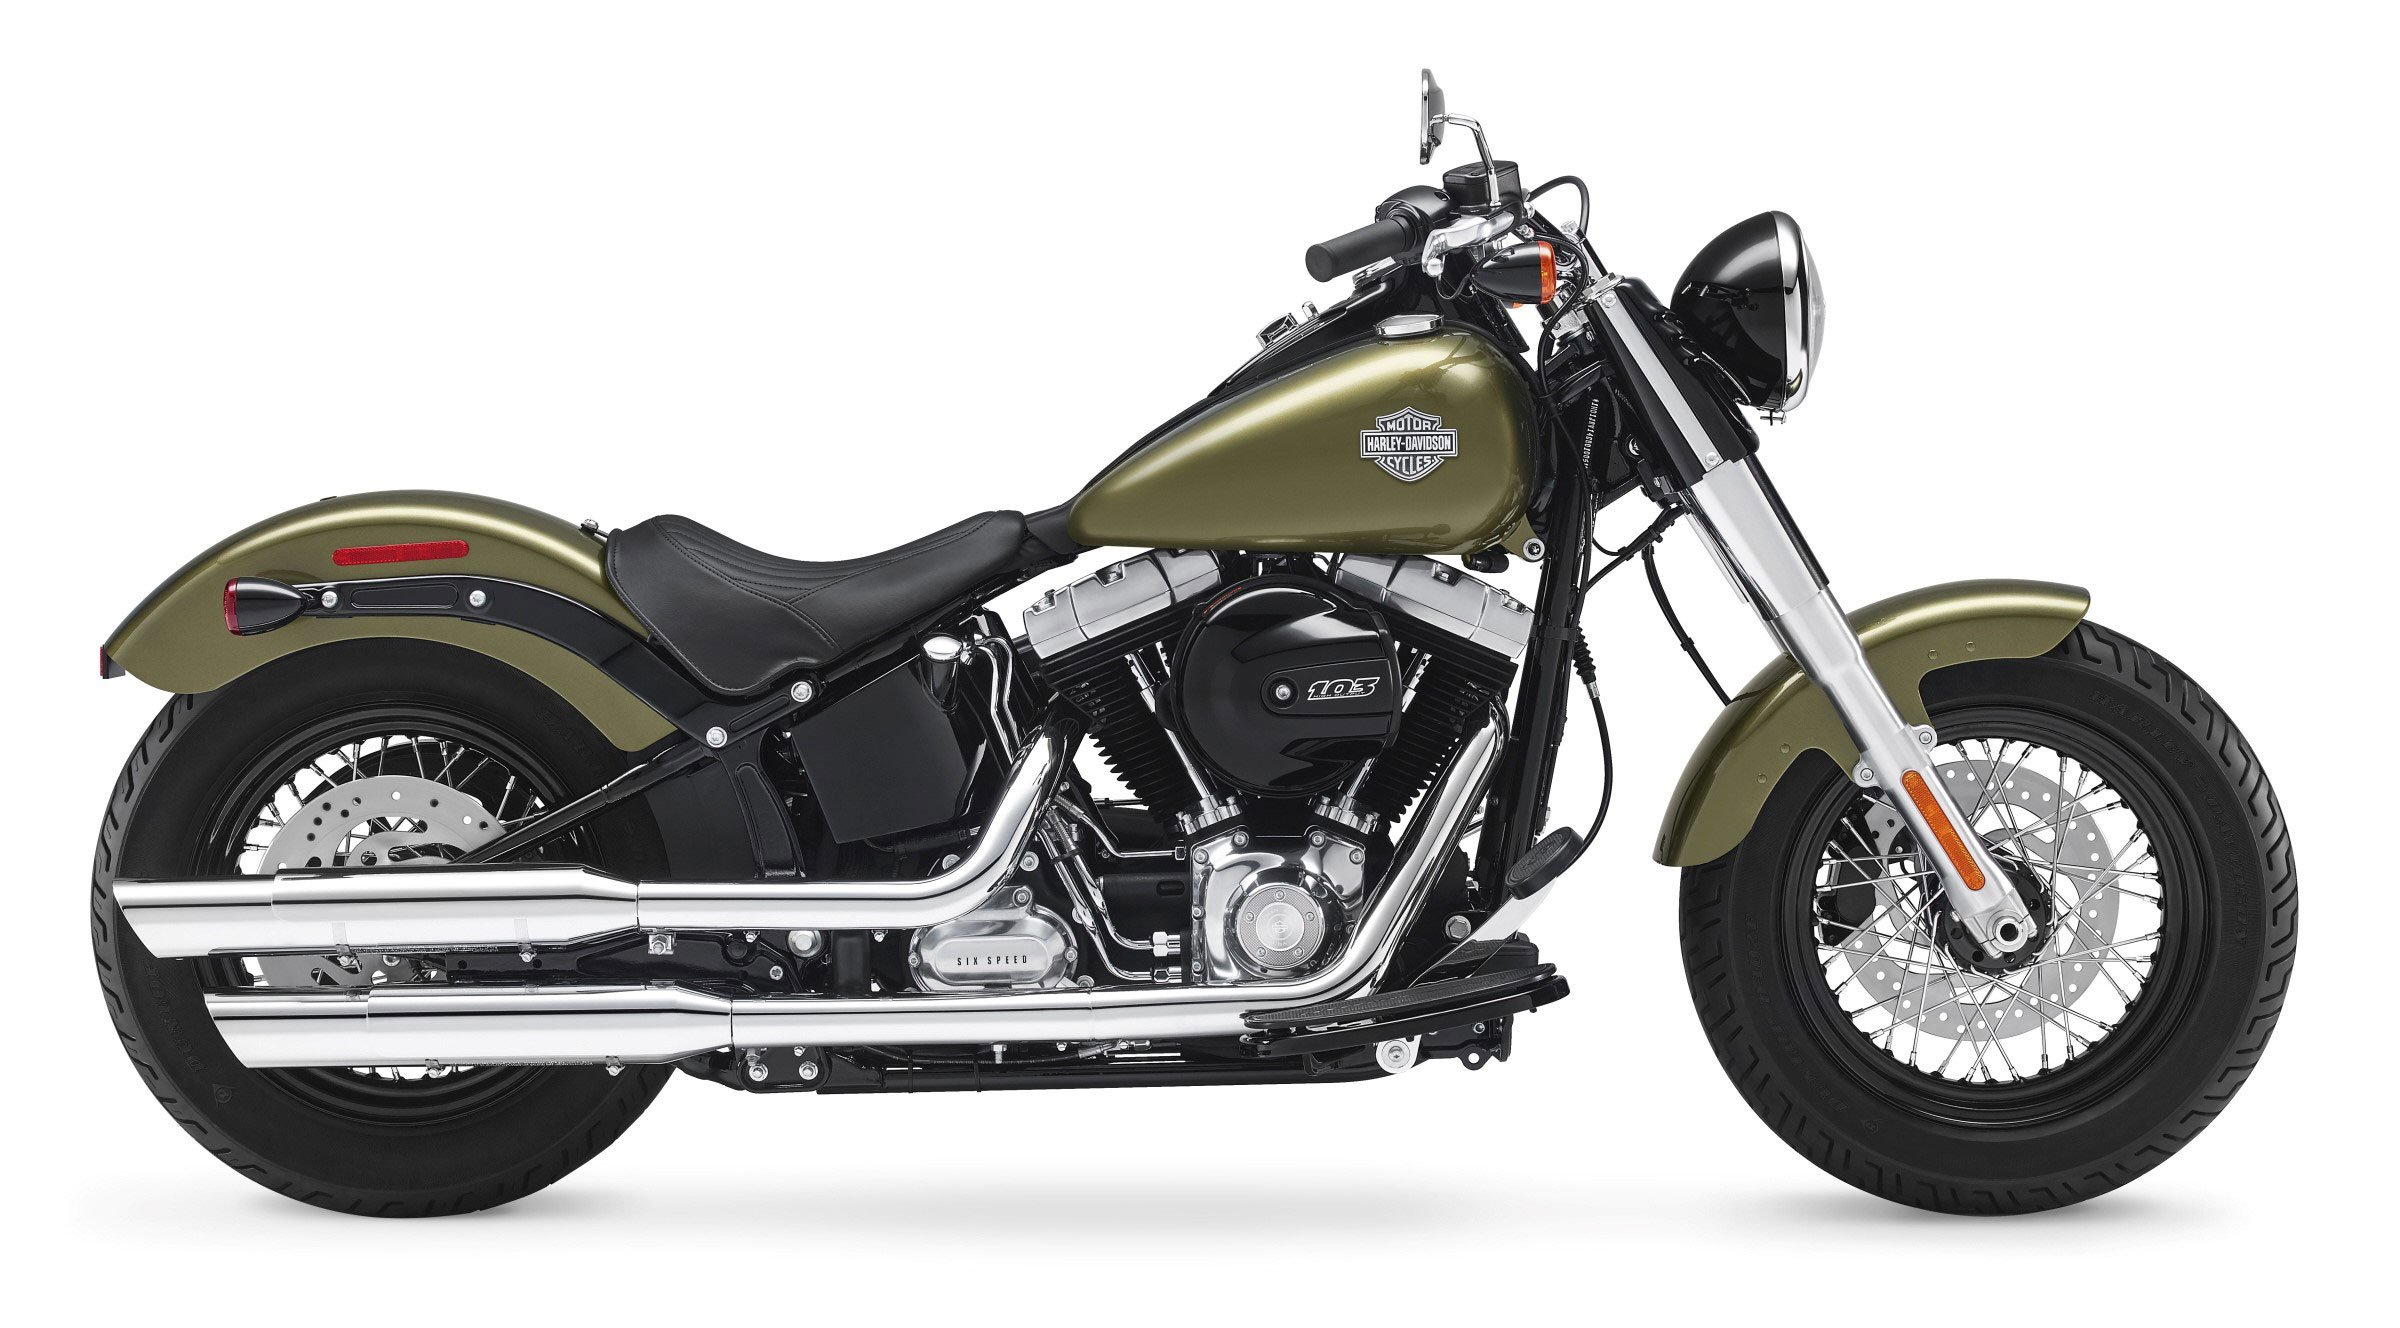 Harley Davidson Introduces All New 2018 Softail Line Motor Mount Forums On Engine Diagram 2017